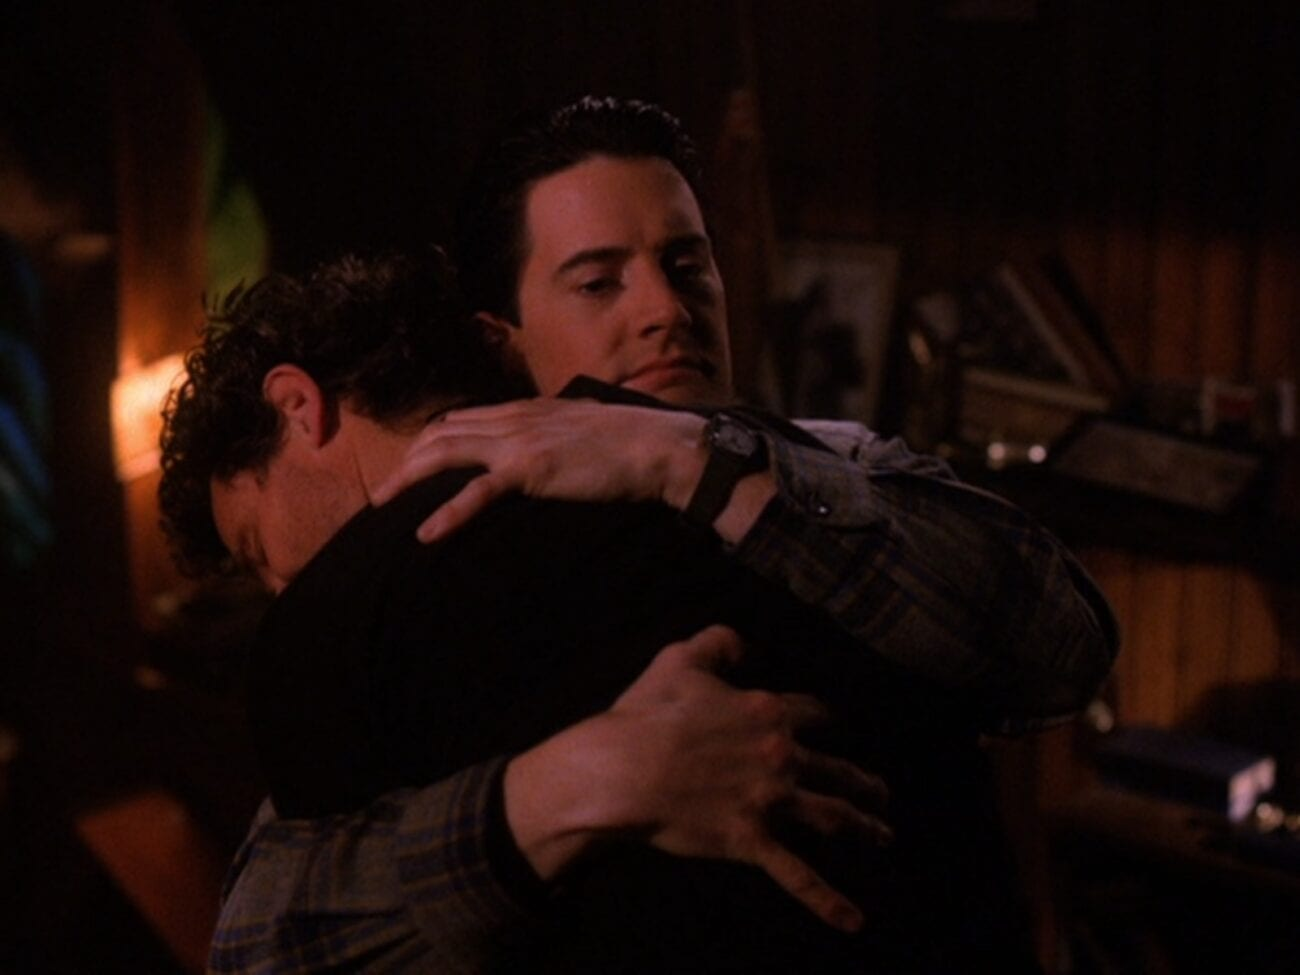 Cooper gives Harry a big hug, a destroyed Bookhouse in the background